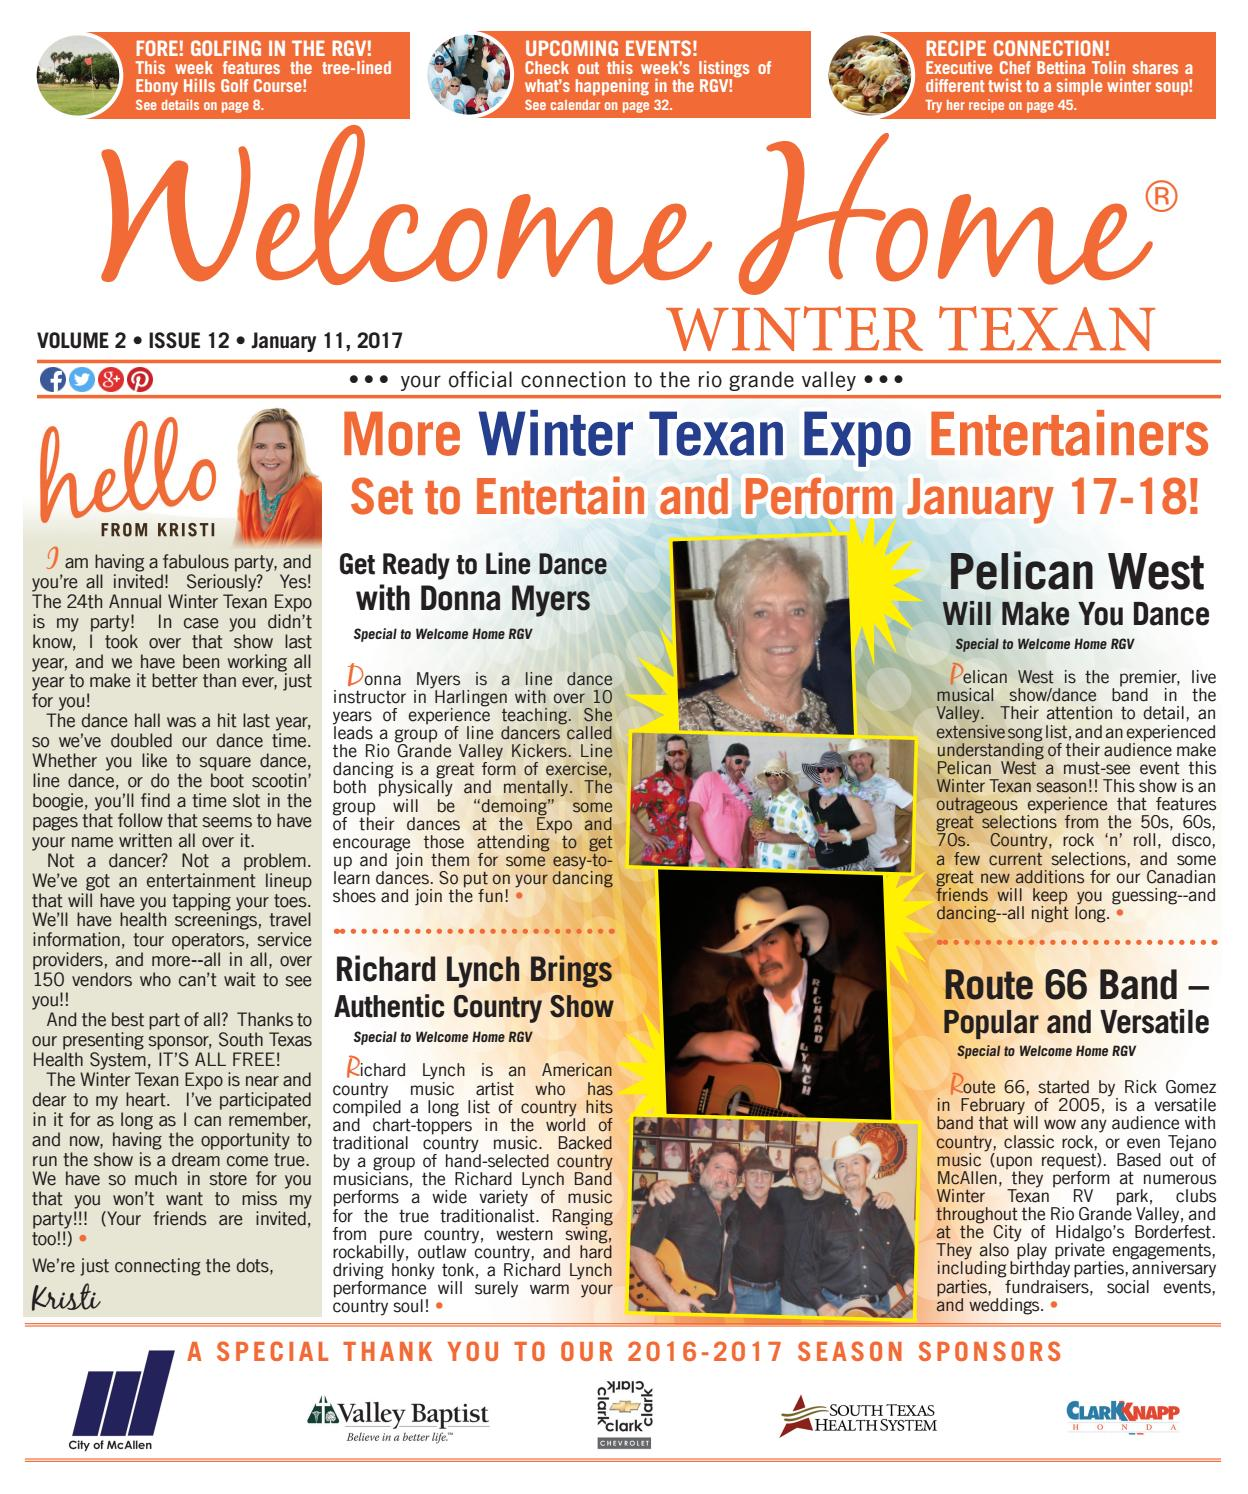 Welcome Home Winter Texan : Vol 2 Issue 12 : January 11, 2017 By Kristi  Collier  Issuu